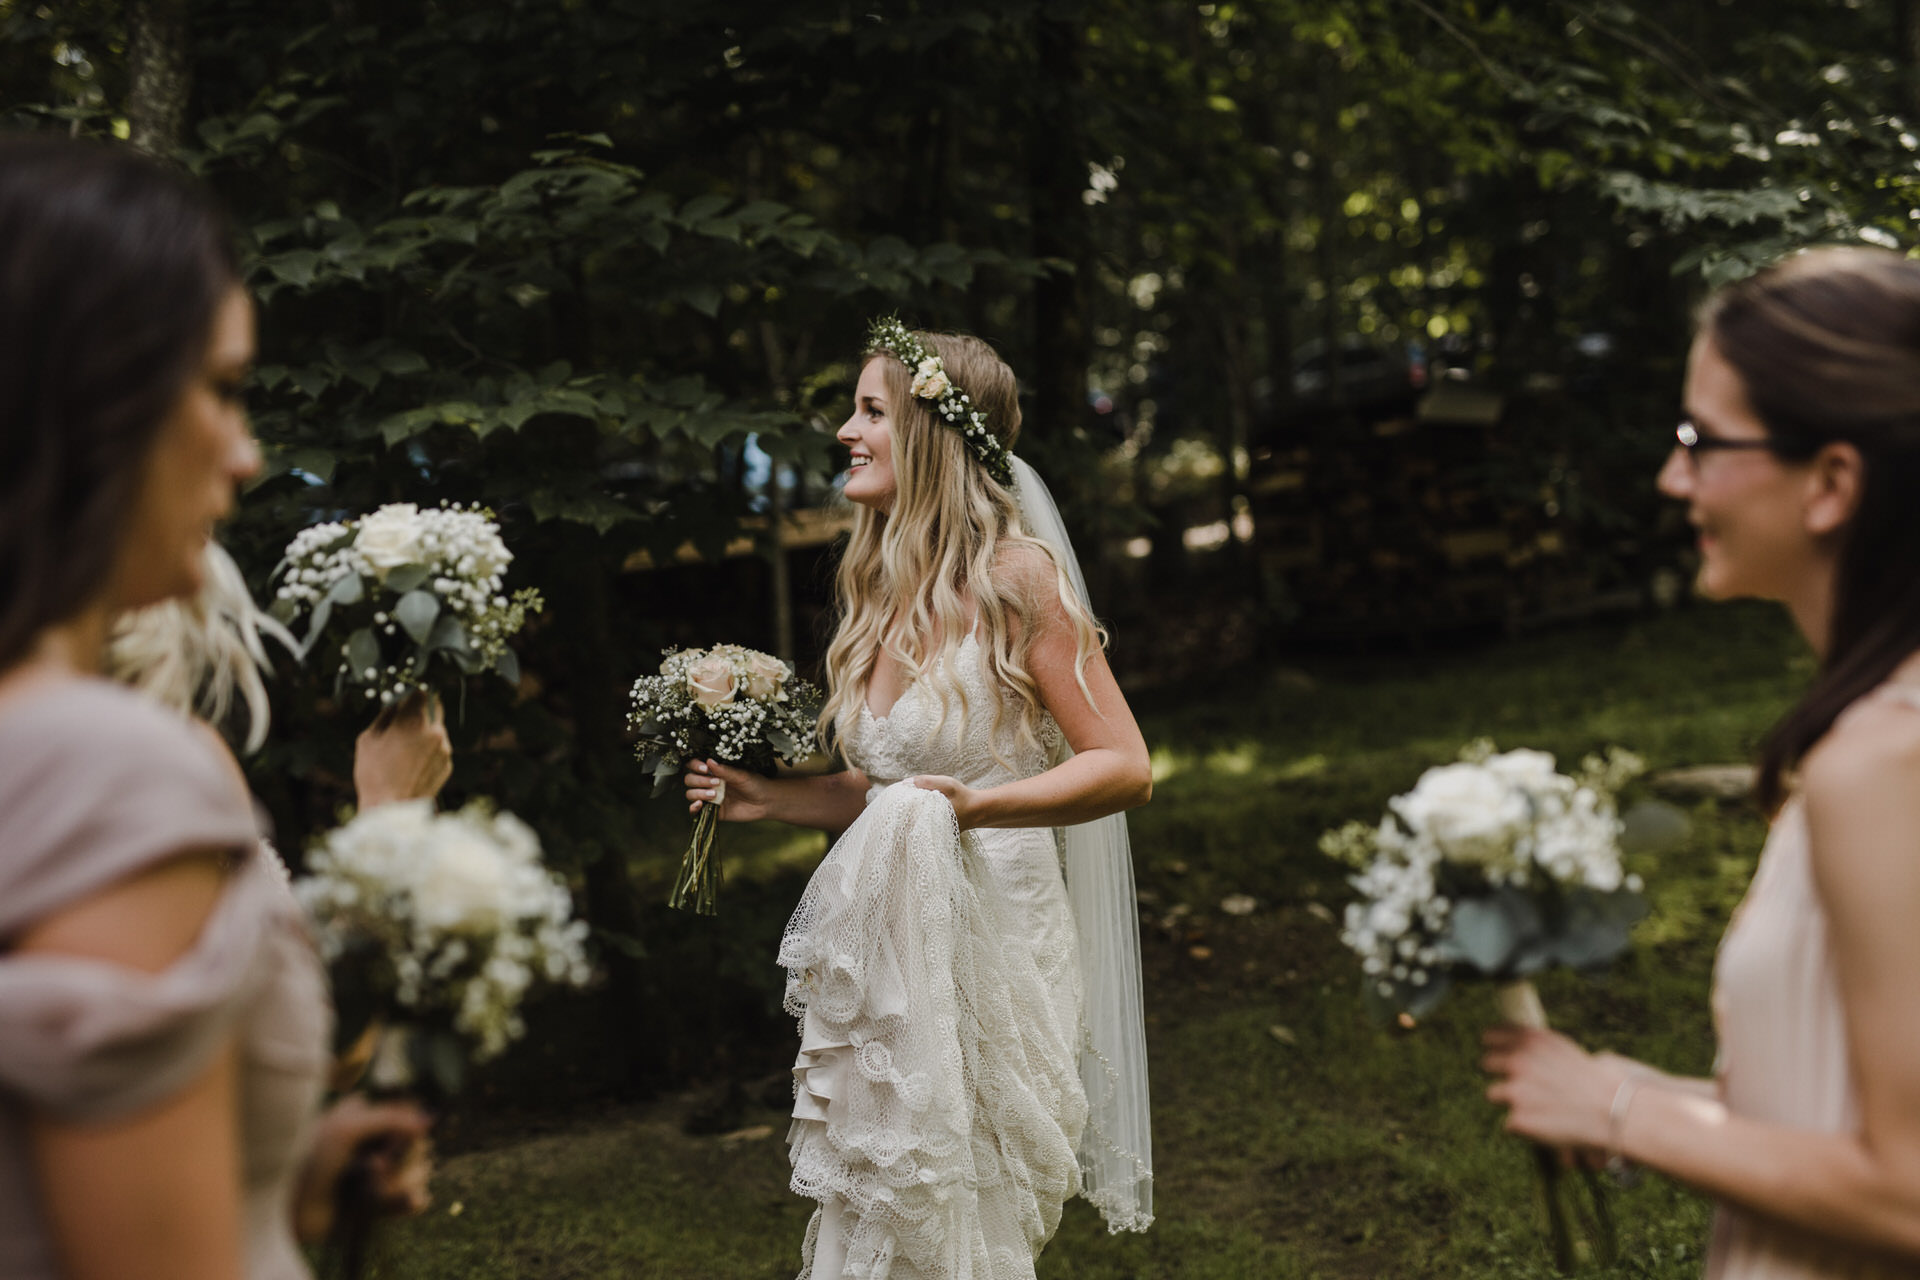 Muskoka Wedding - bride and bridesmaids